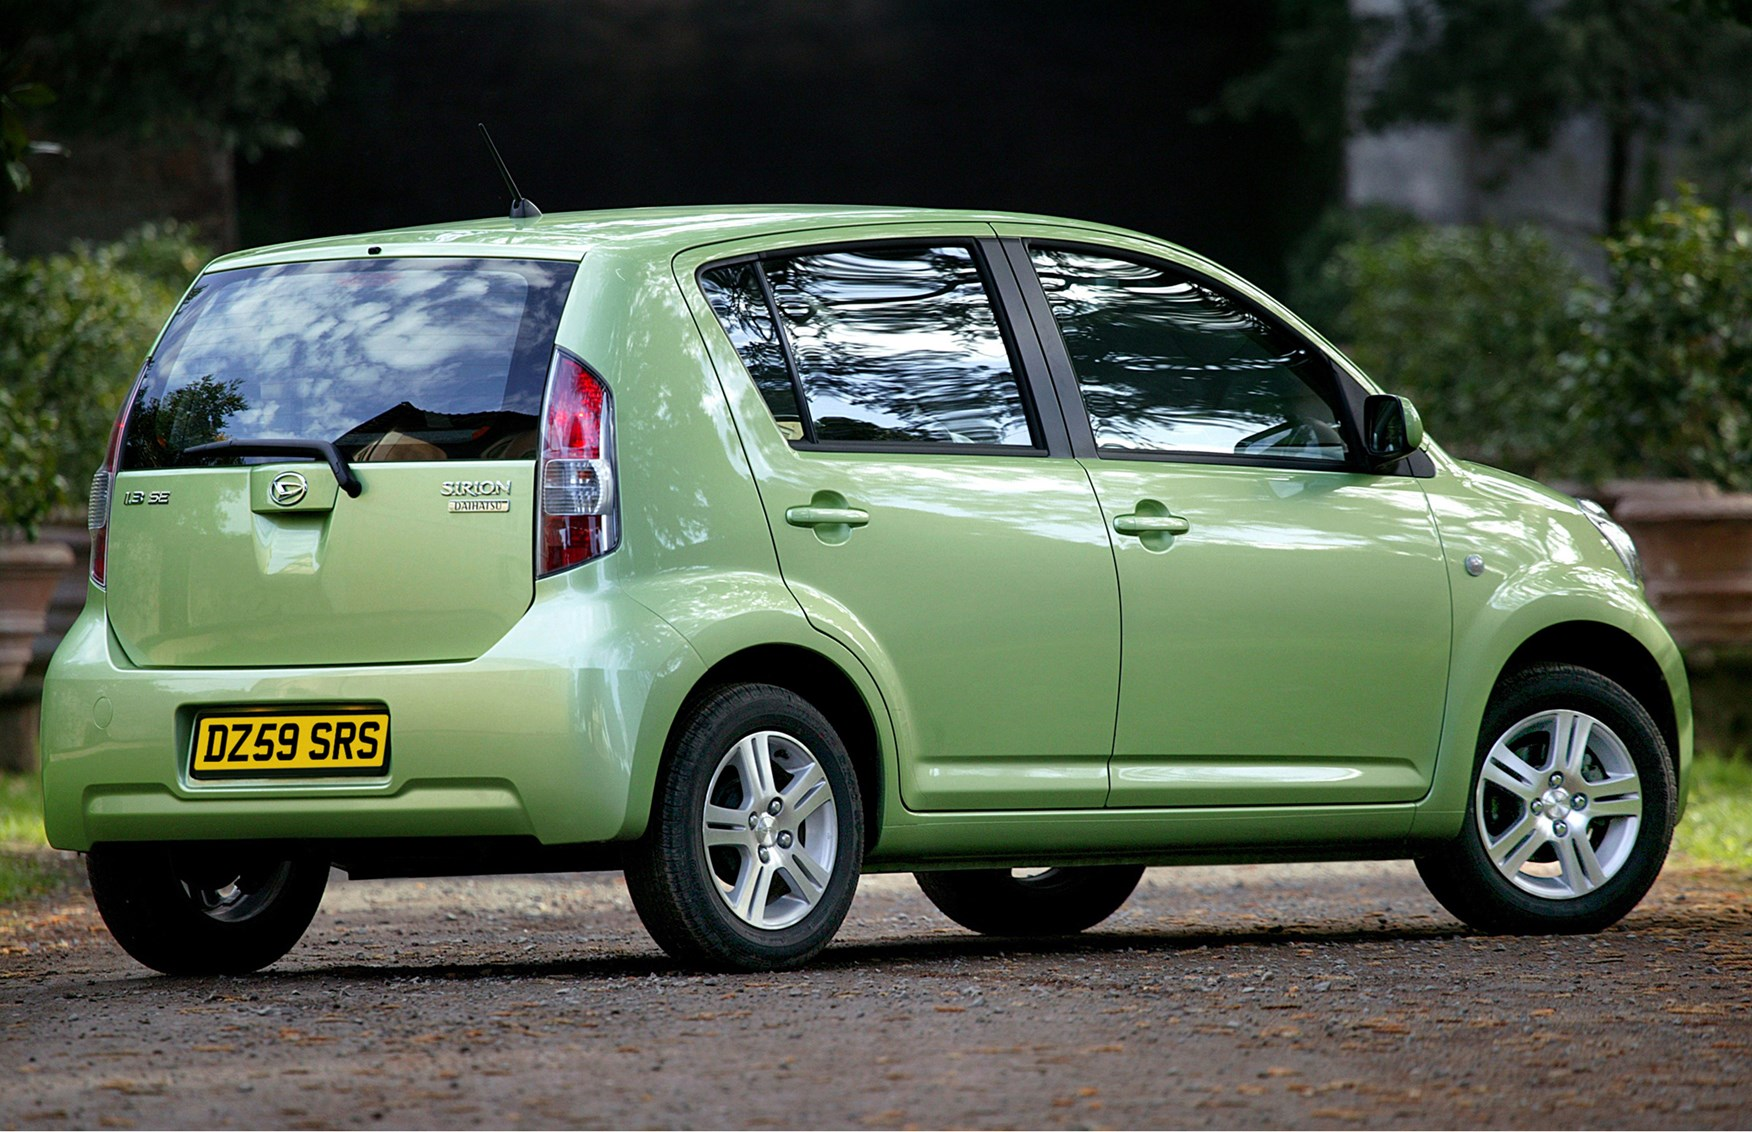 used daihatsu sirion hatchback (2005 2010) practicality parkershow much is it to insure?